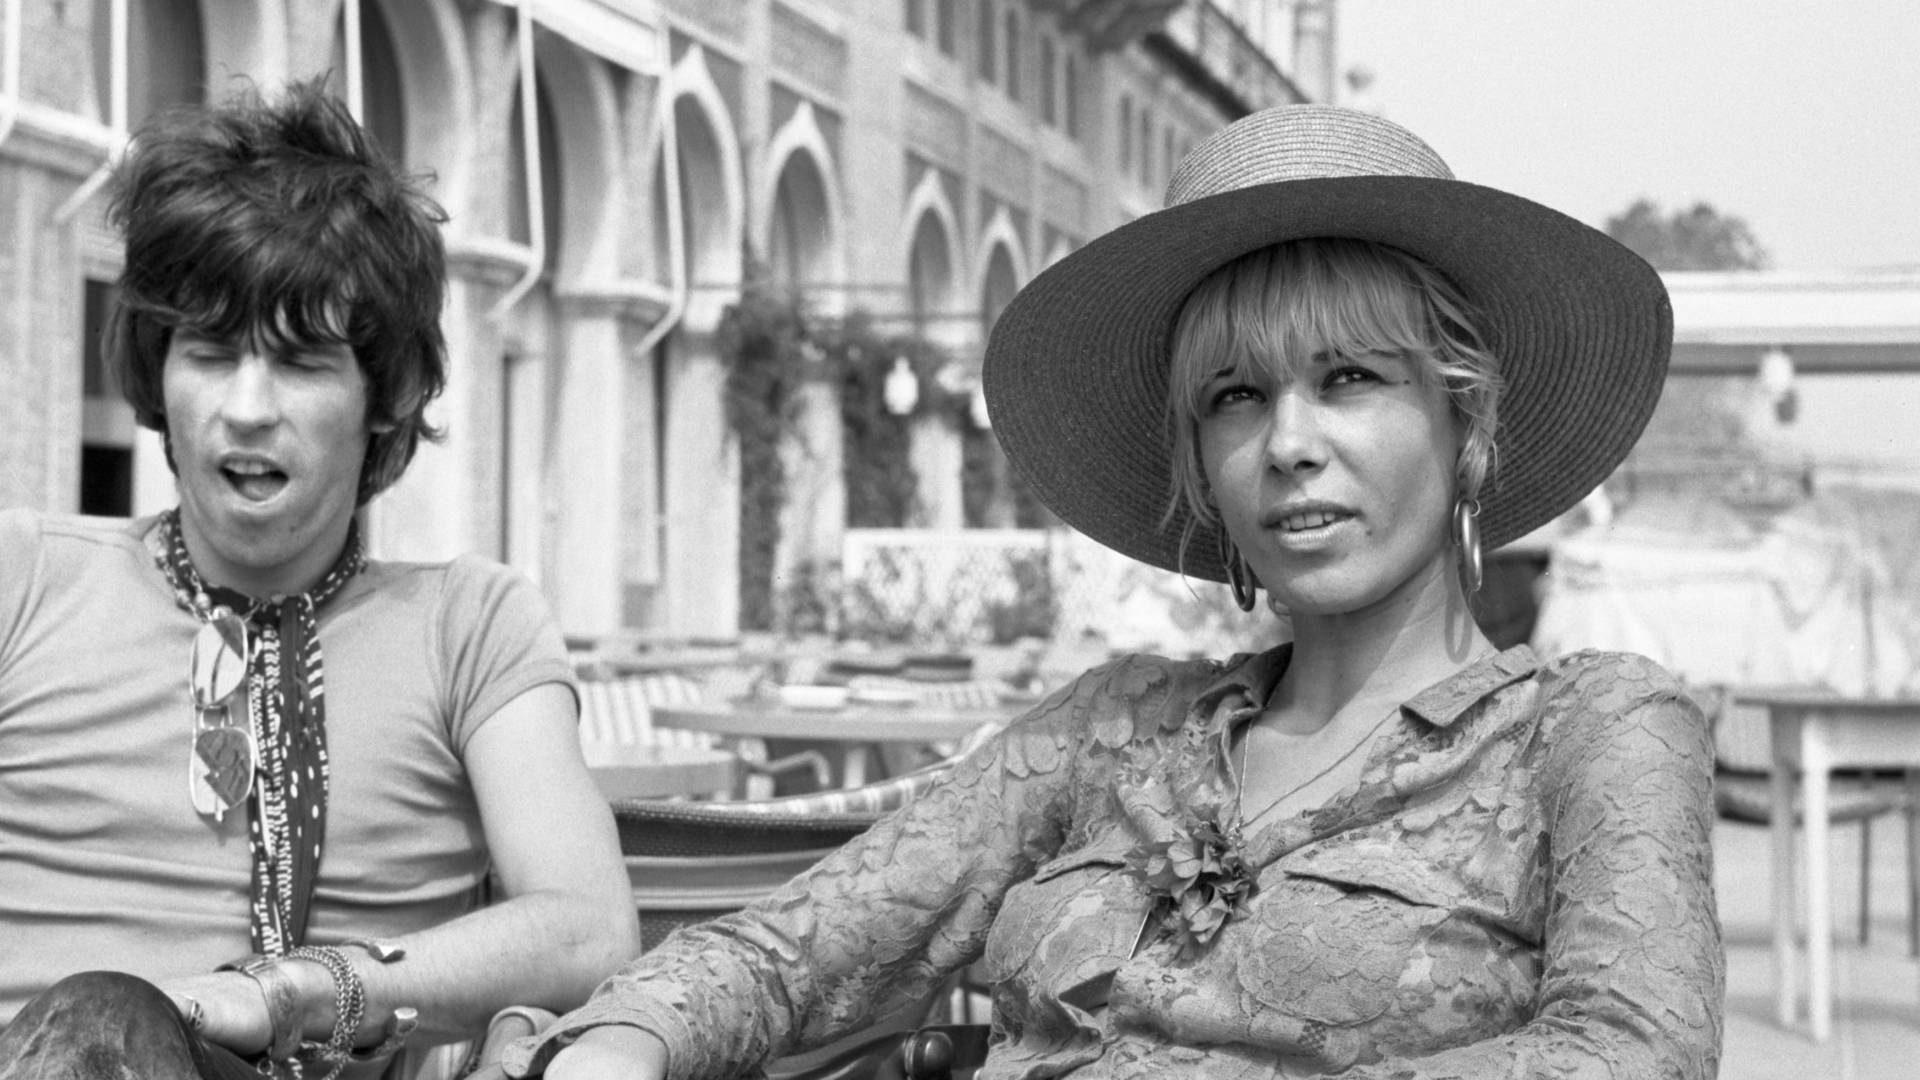 Anita Pallenberg, sitting outside the Excelsior Hotel in Venice alongside Keith Richards in1967 Photo: Archivio Cameraphoto Epoche/Getty Images